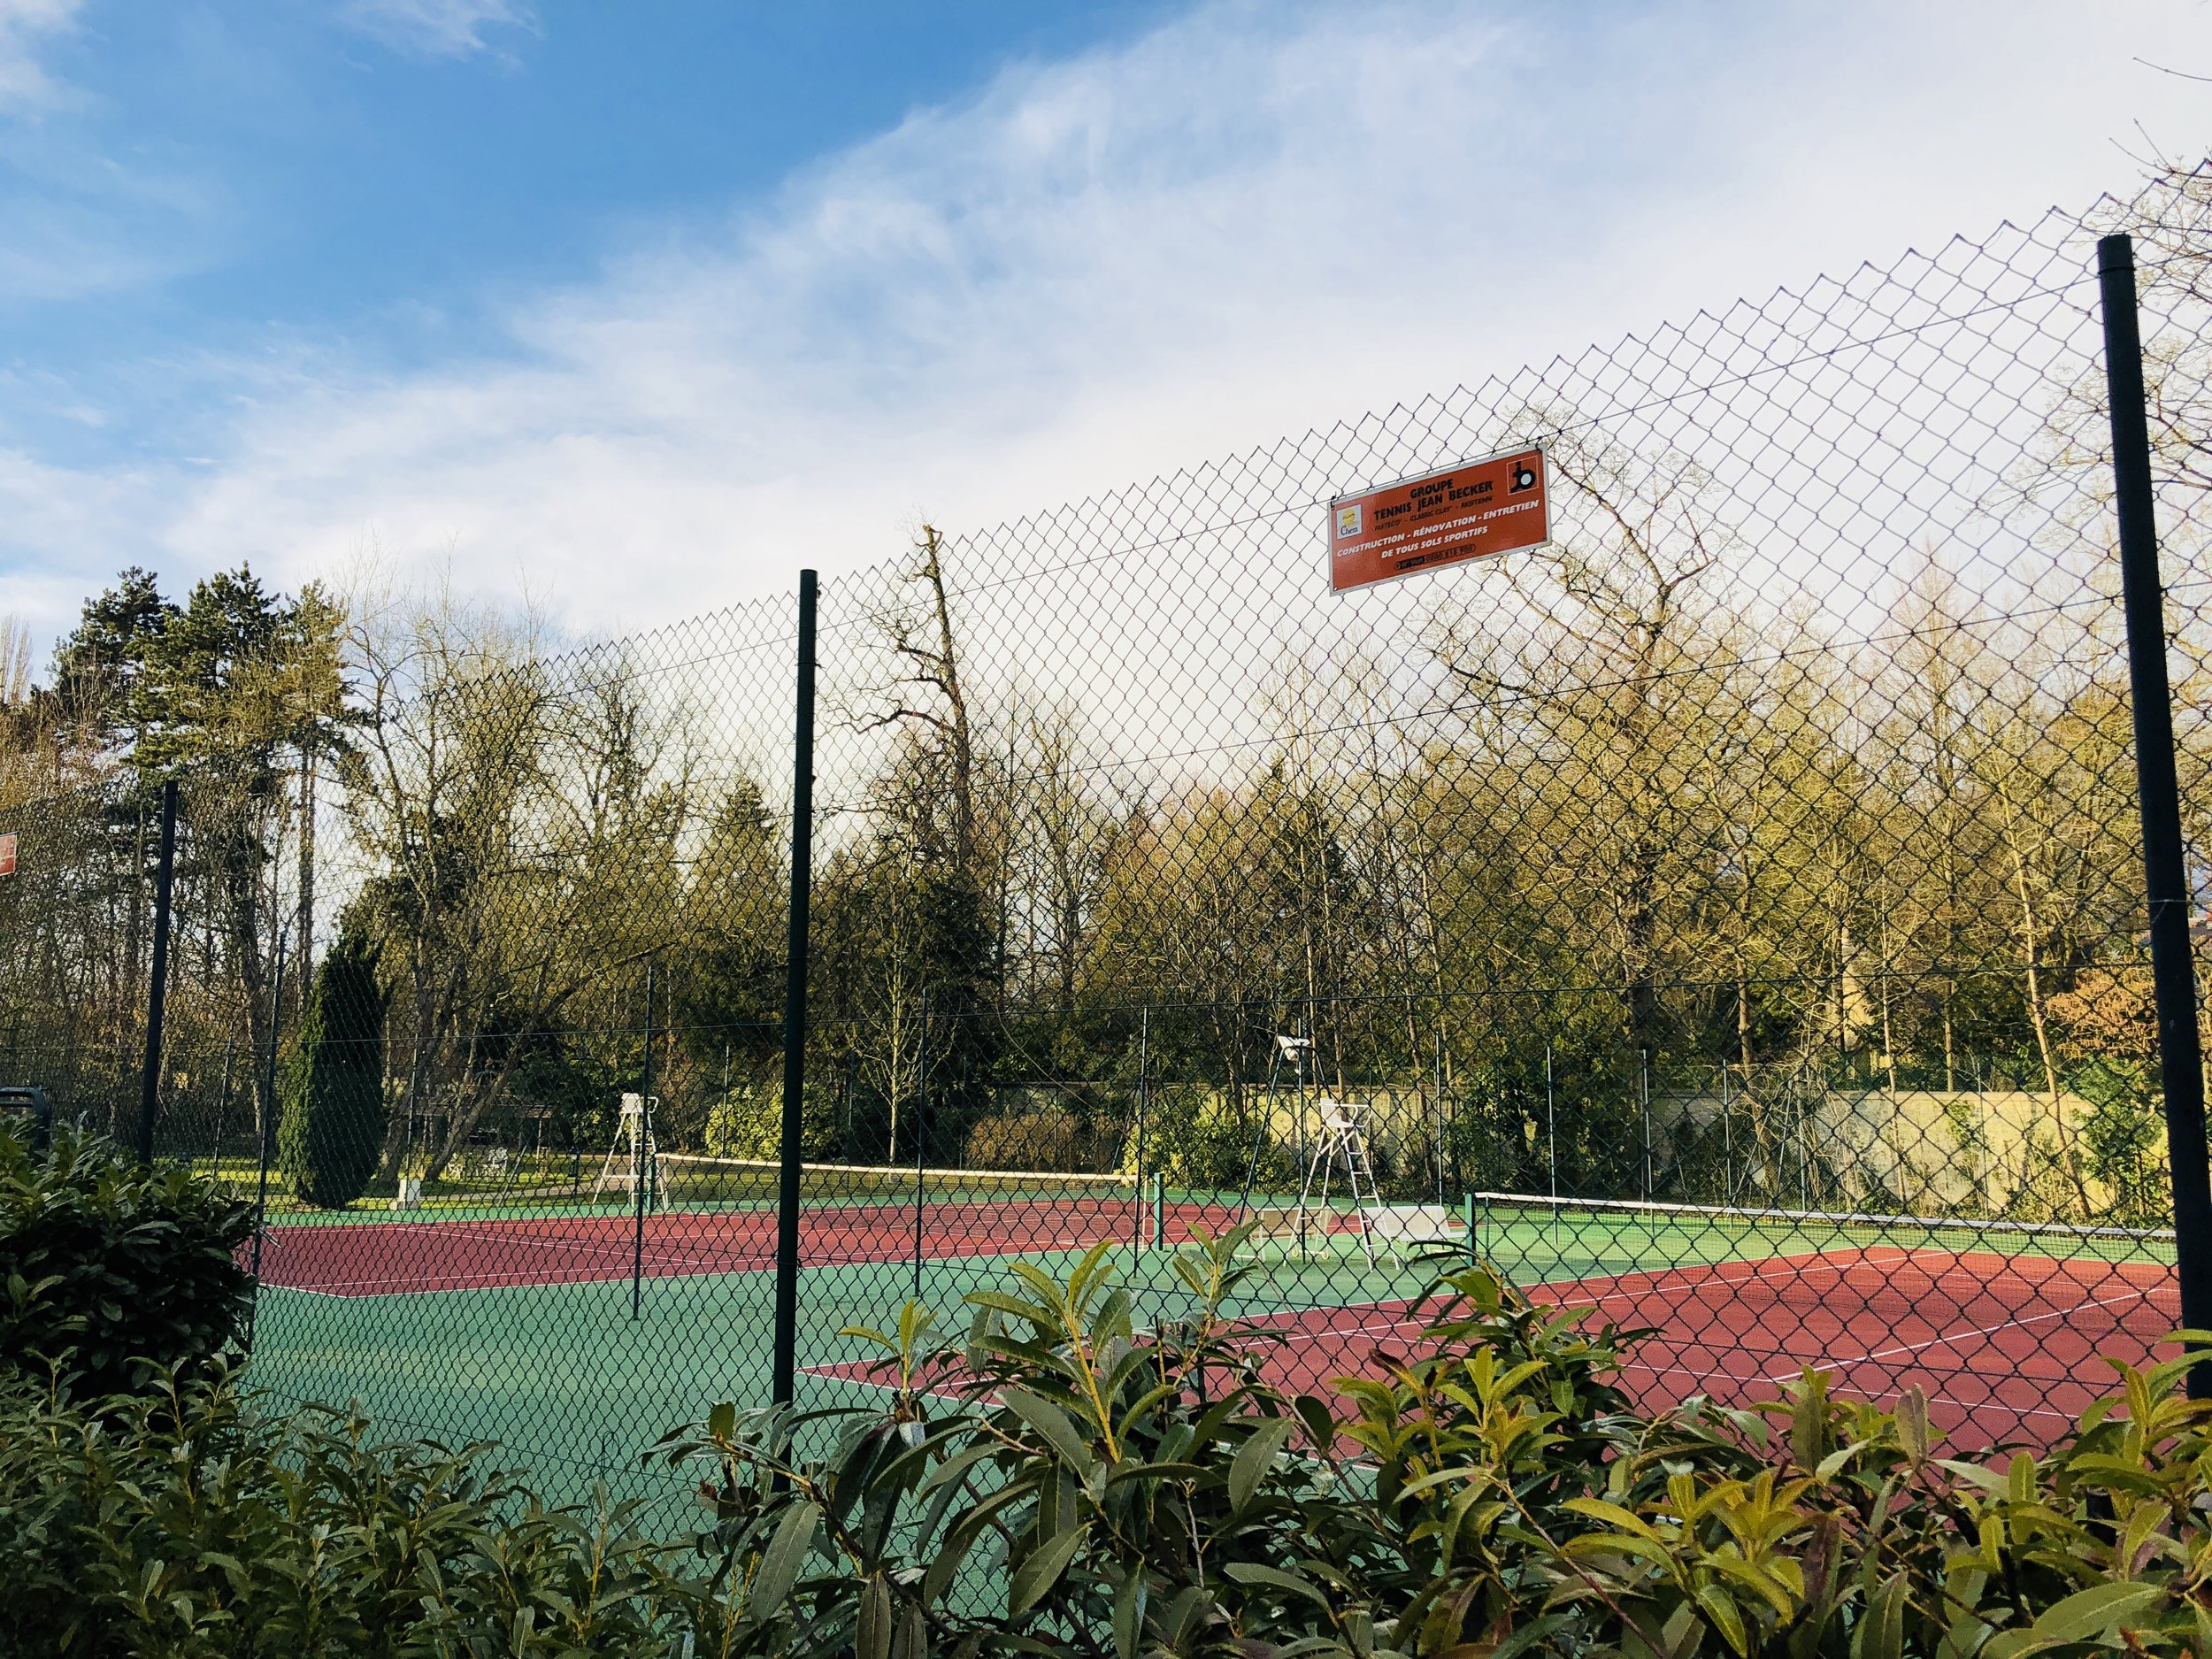 Tennis courts in great condition